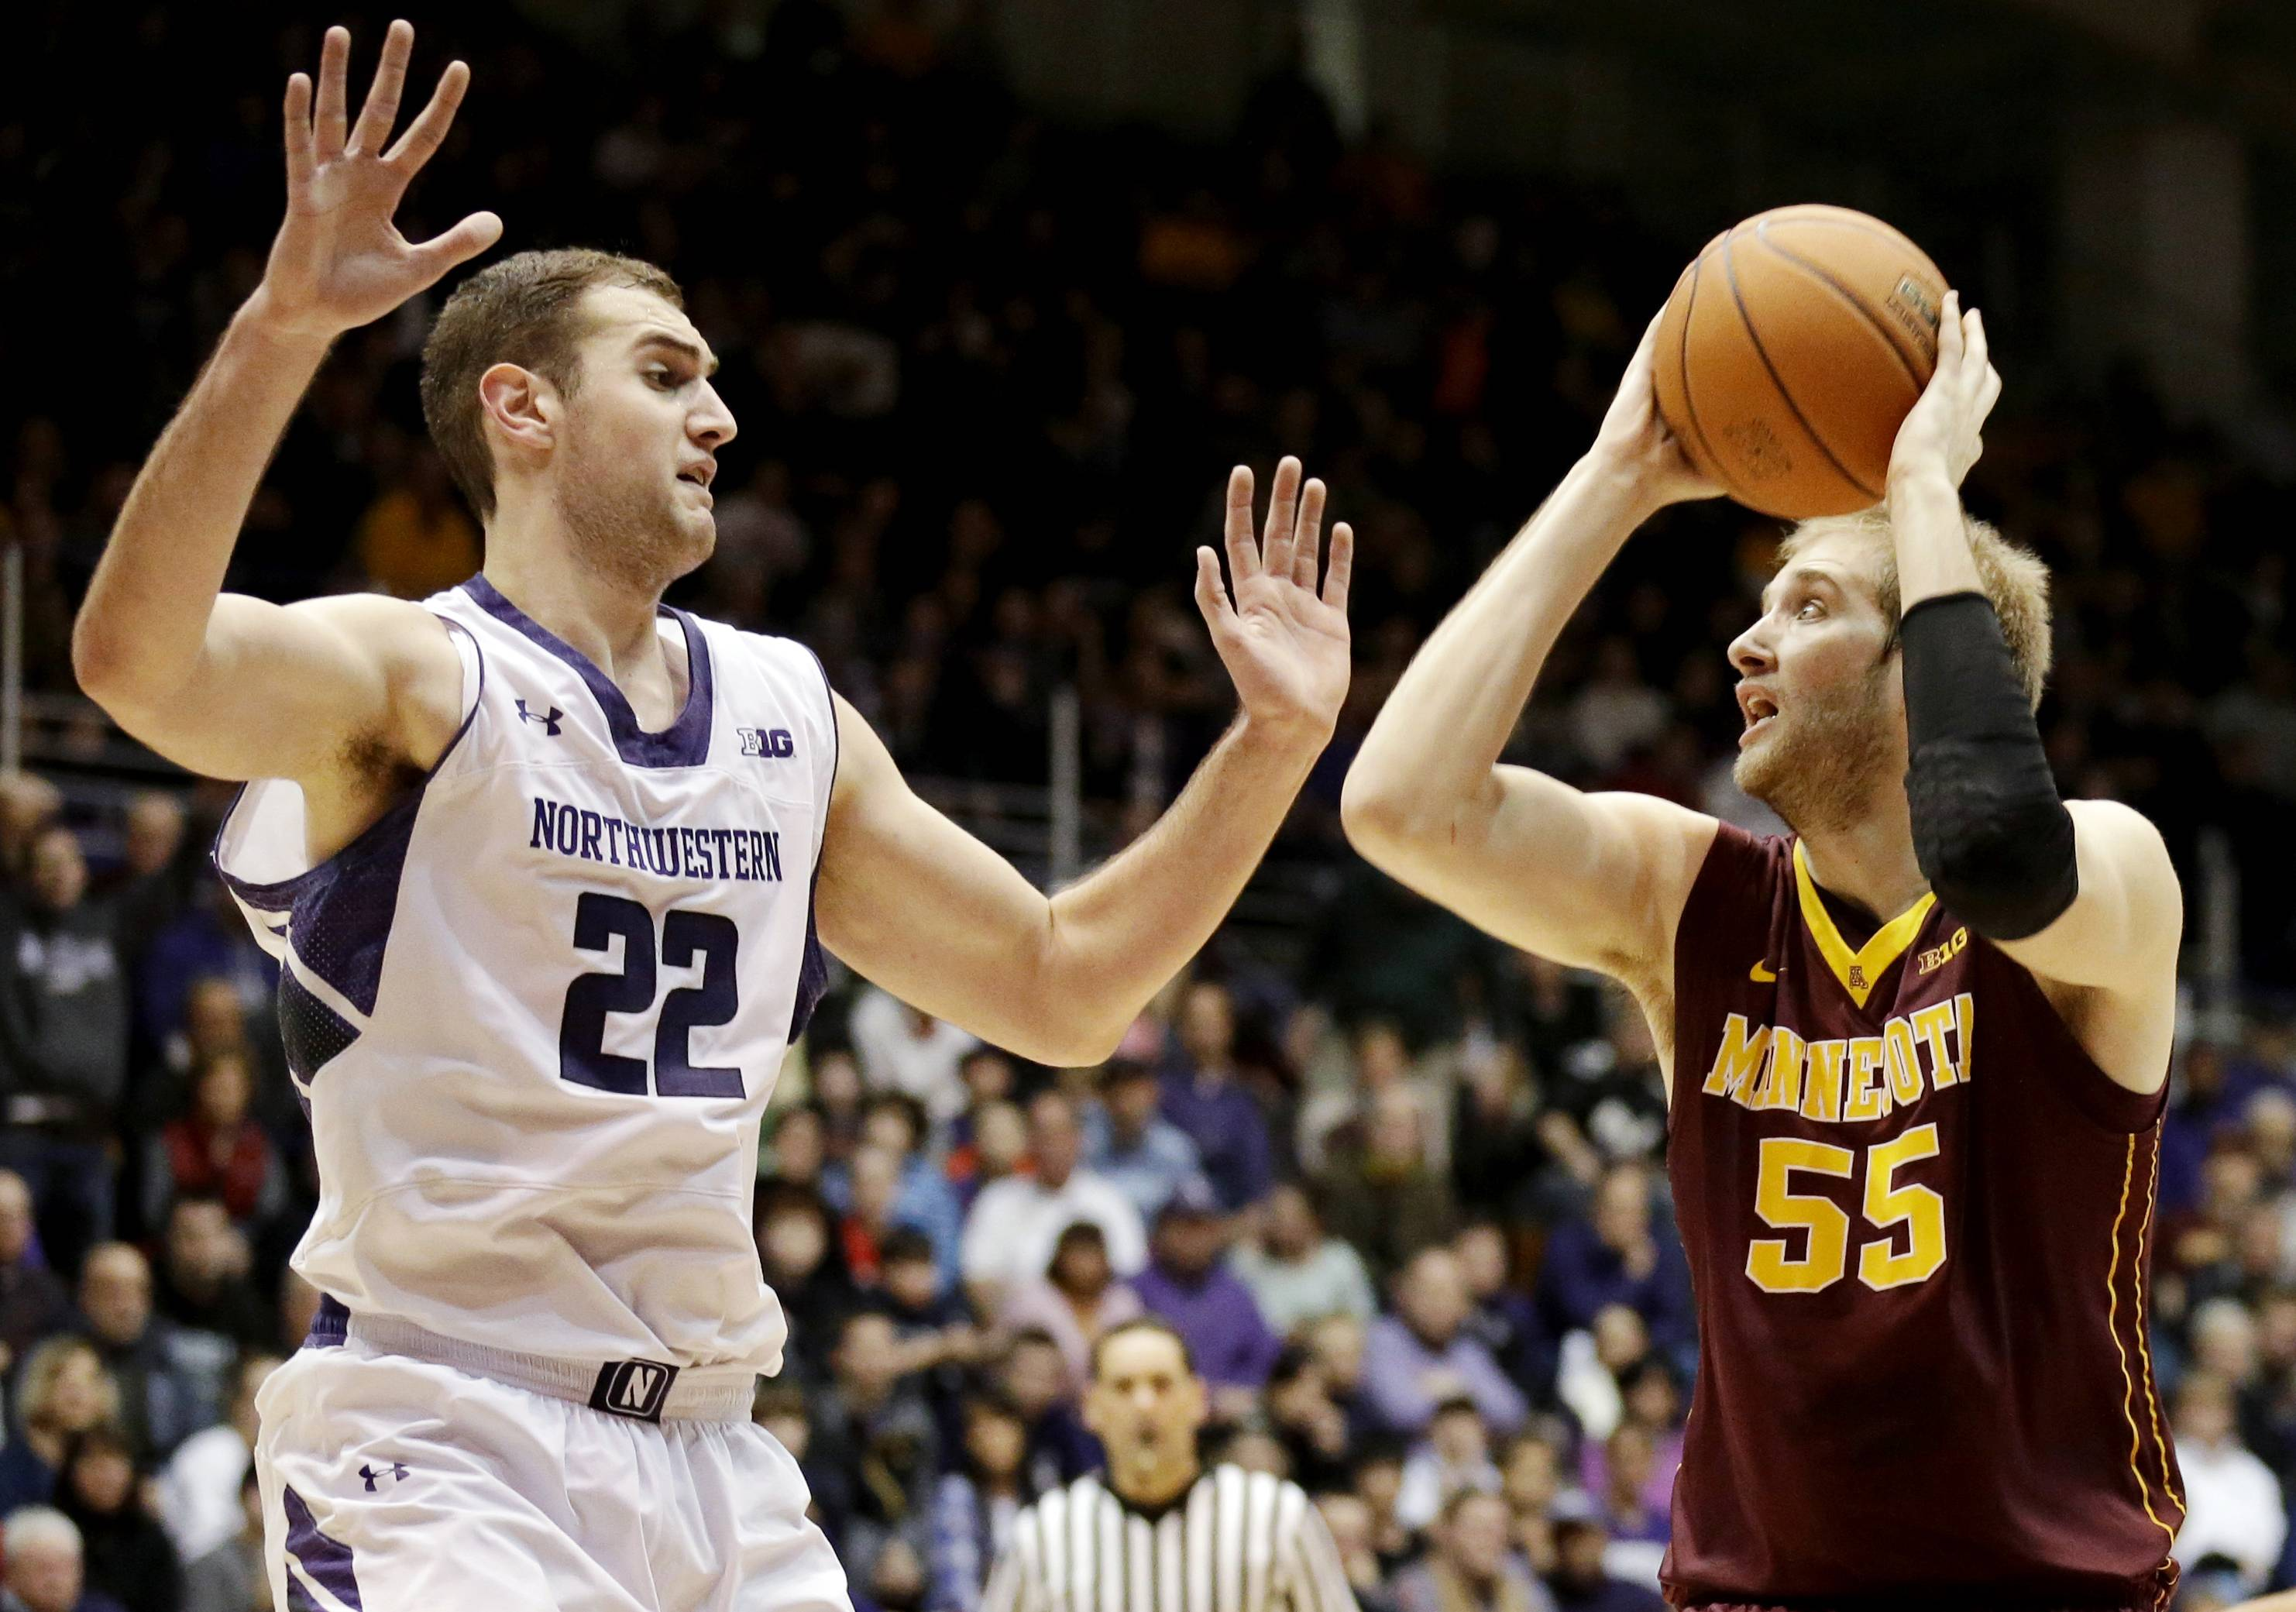 Minnesota center Elliott Eliason, right, looks to the basket against Northwestern center Alex Olah during the first half of an NCAA college basketball game in Evanston, Ill., Sunday, Feb. 16, 2014.